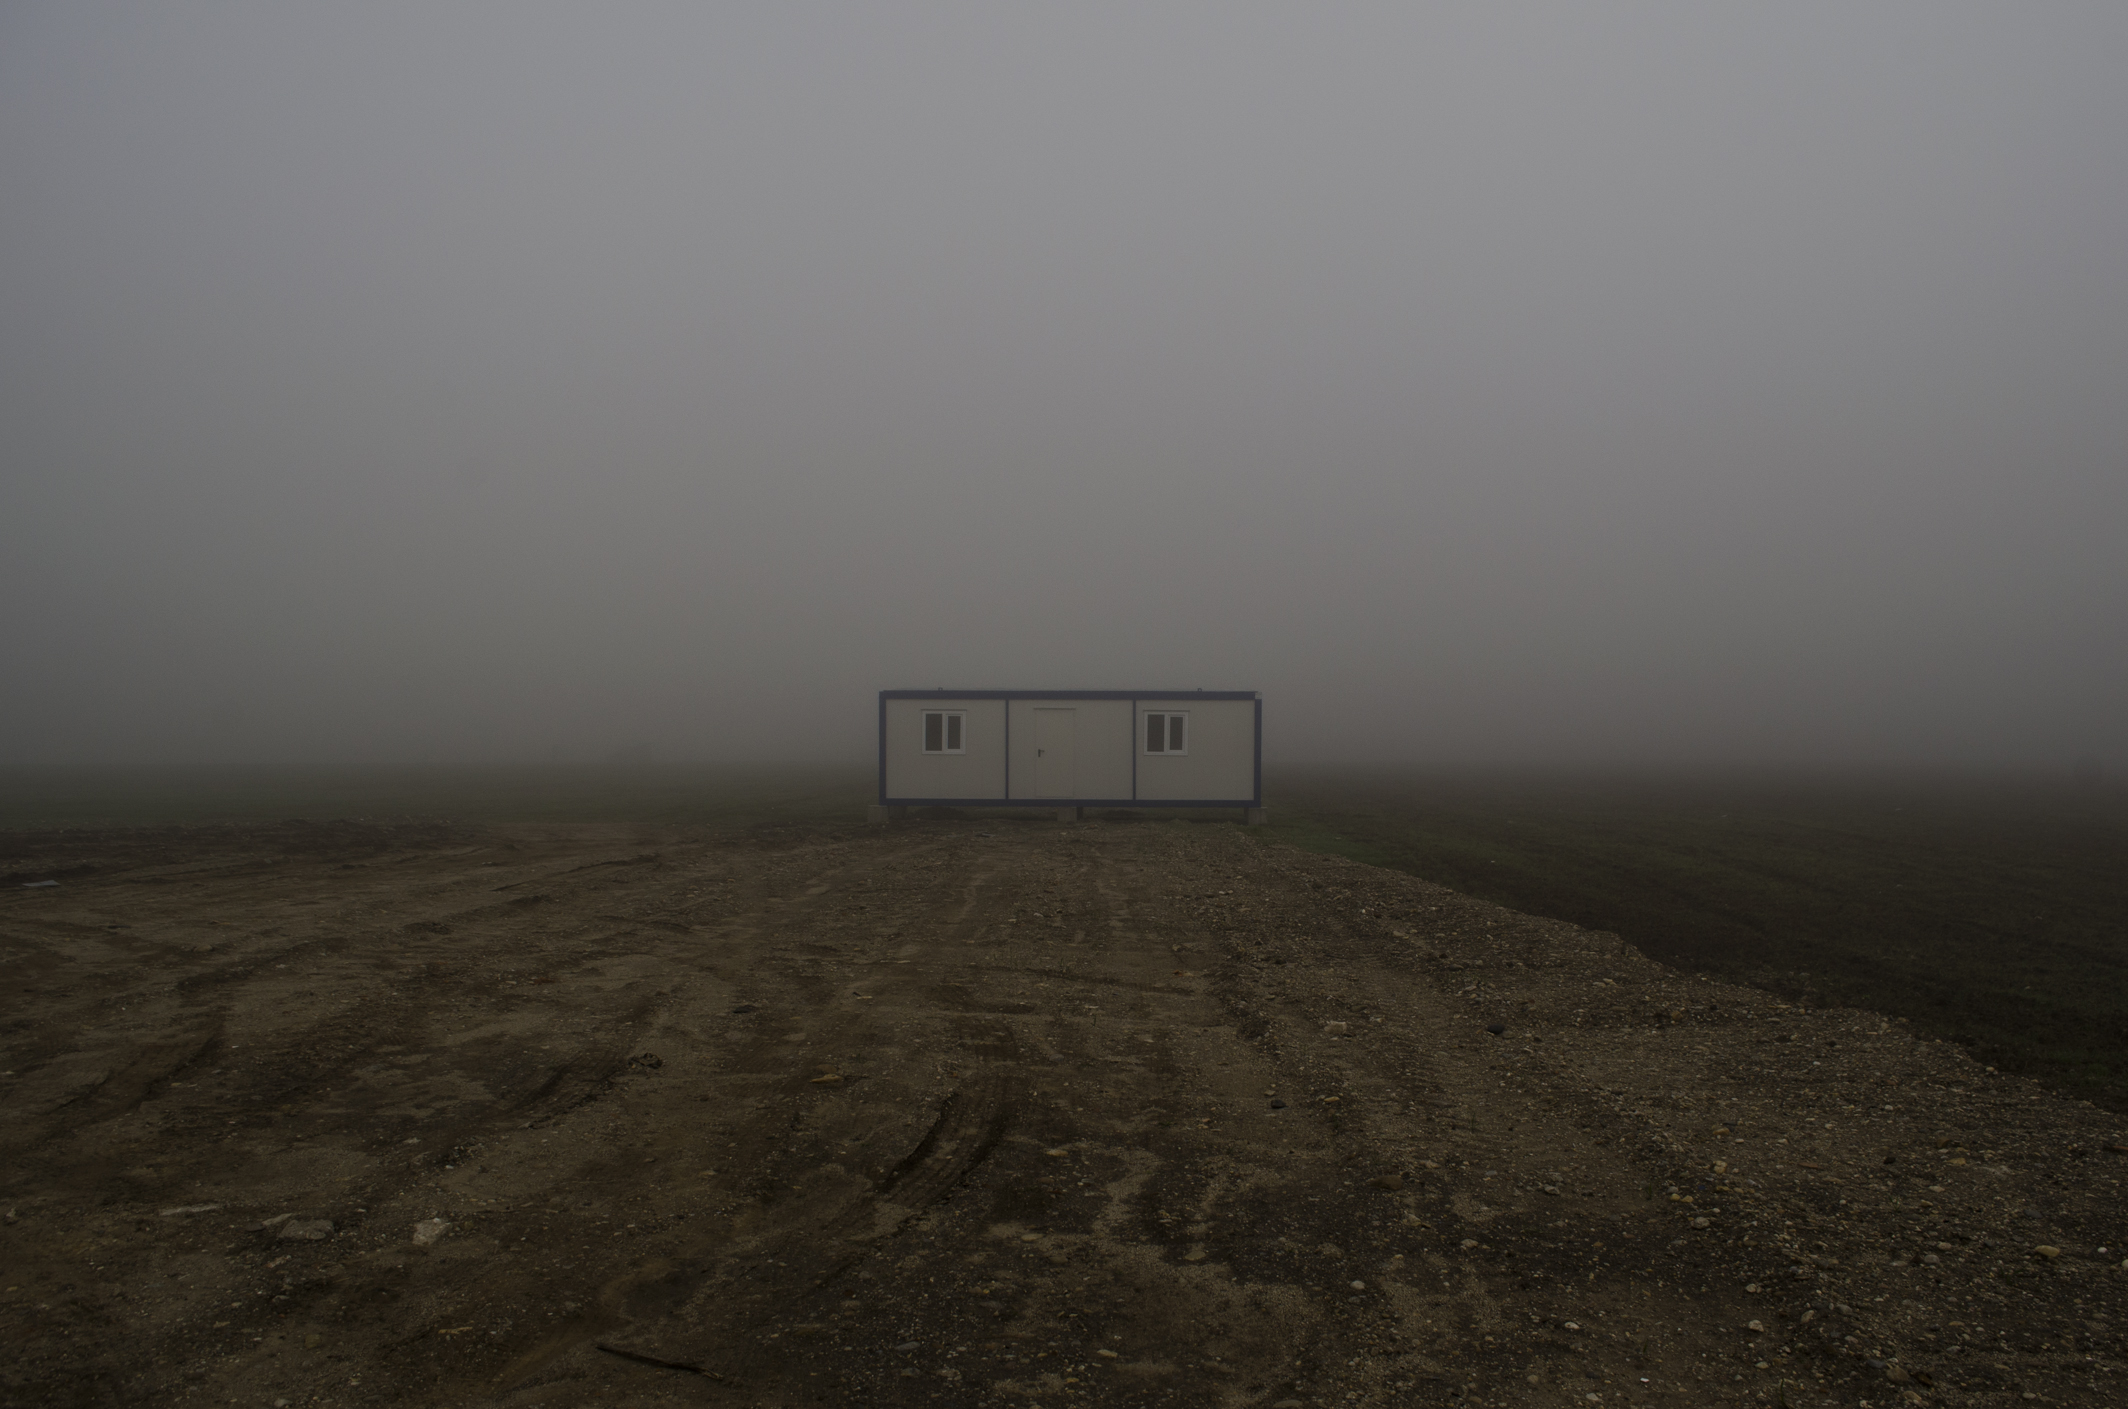 Demosthenes Maragos, Romania, common routes, project, photography